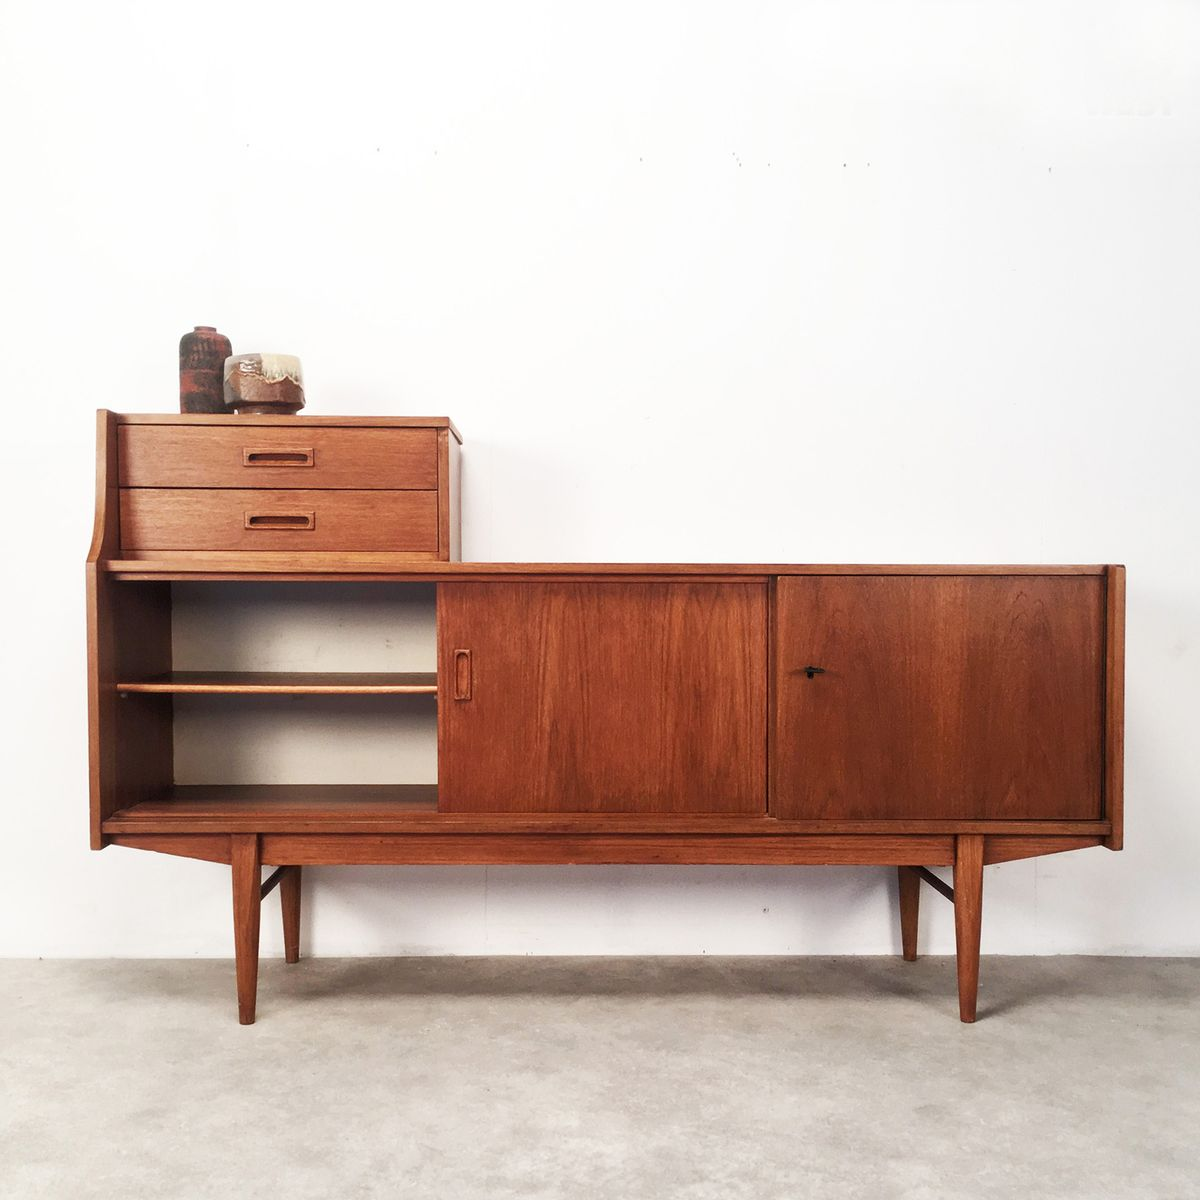 skandinavisches teak sideboard mit schubladen 1960er bei pamono kaufen. Black Bedroom Furniture Sets. Home Design Ideas